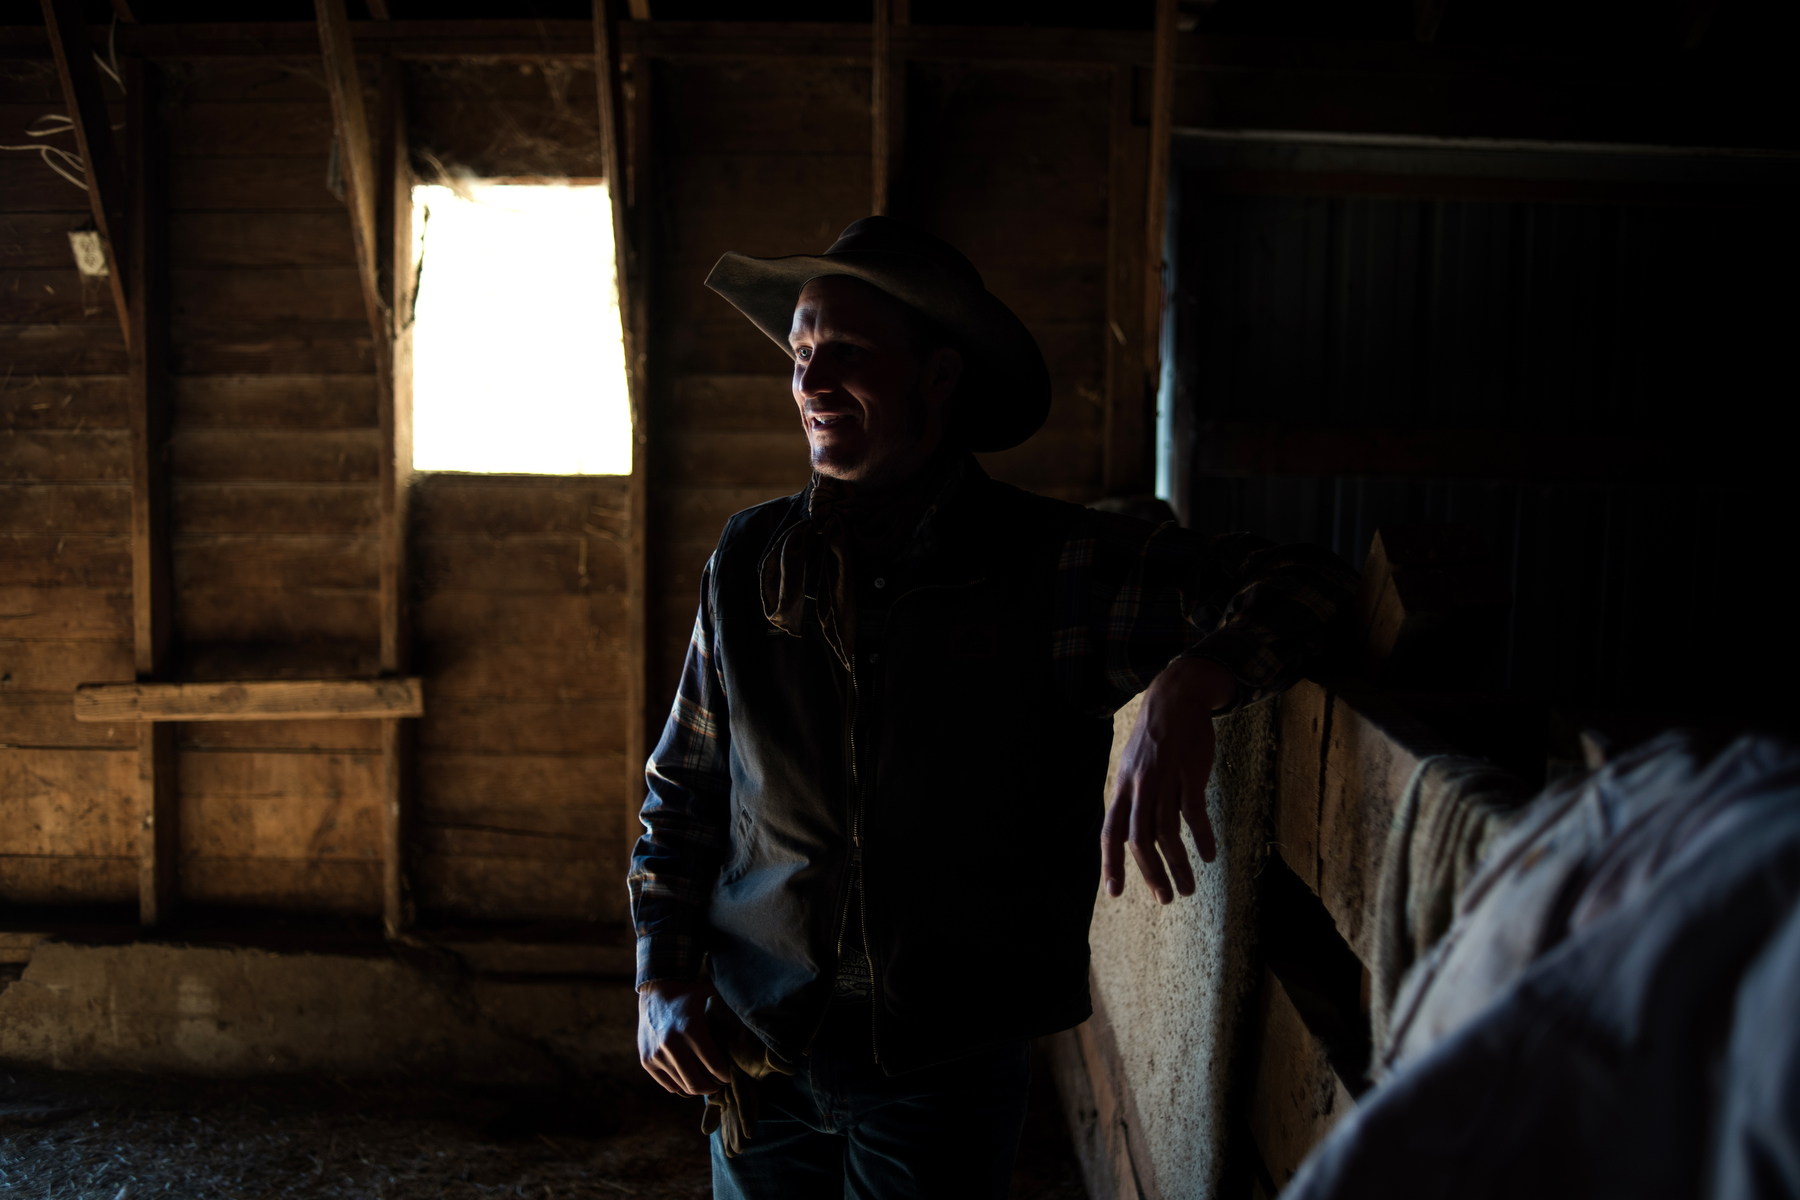 Riley Cihak, hired man, South Dakota, 2018.